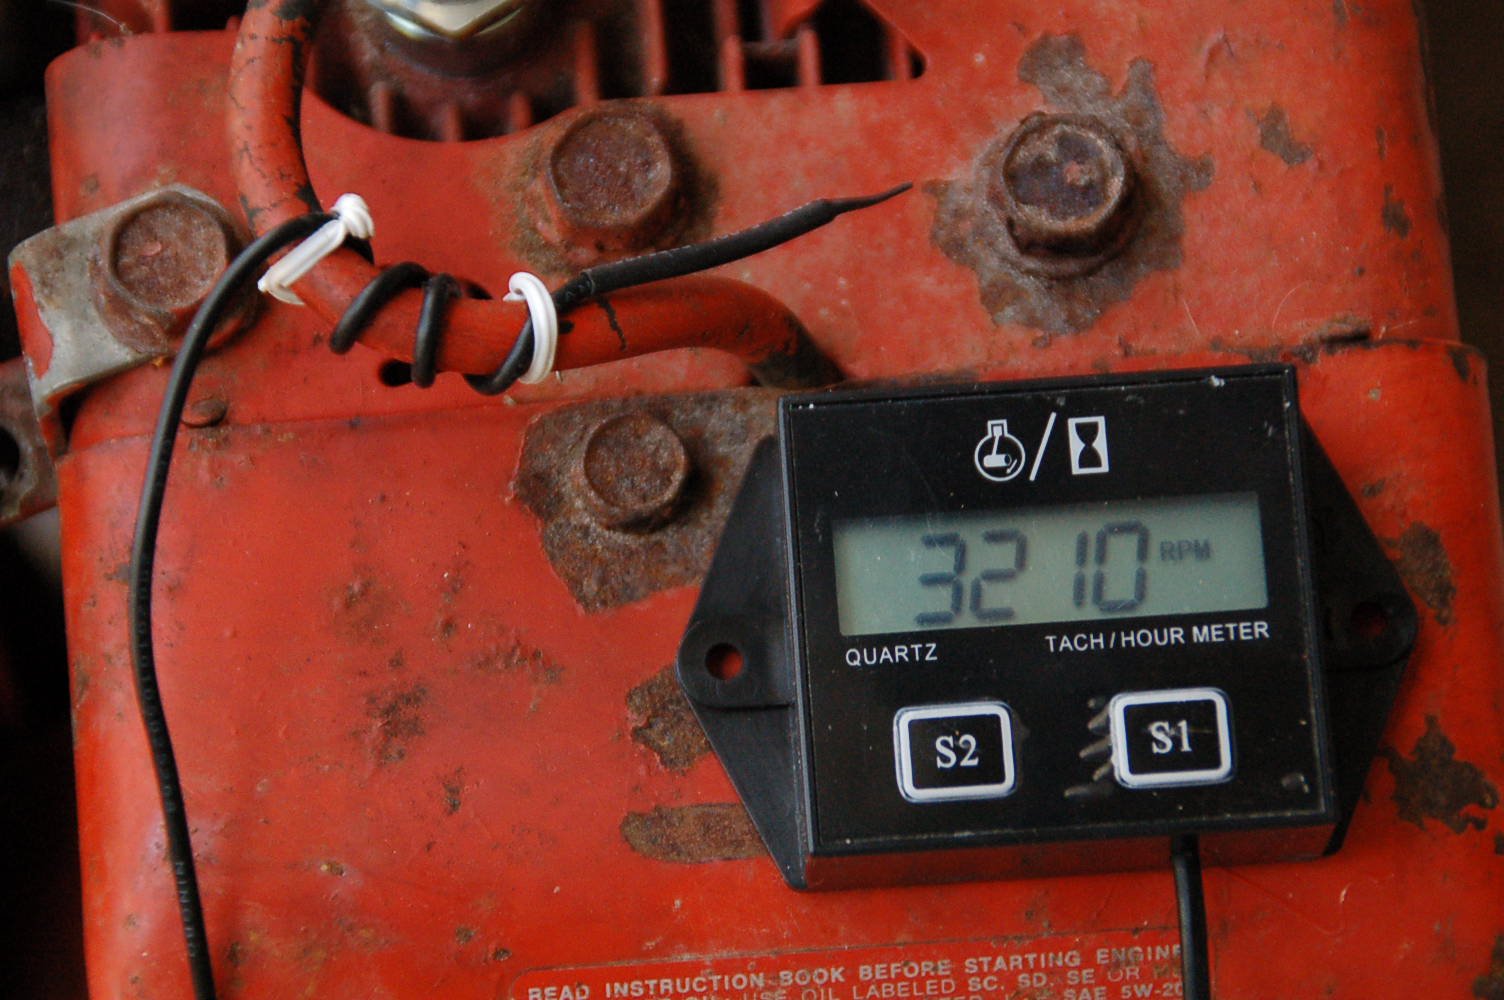 Usefull Tach/hour Meter For All Engines | Boat Design Net